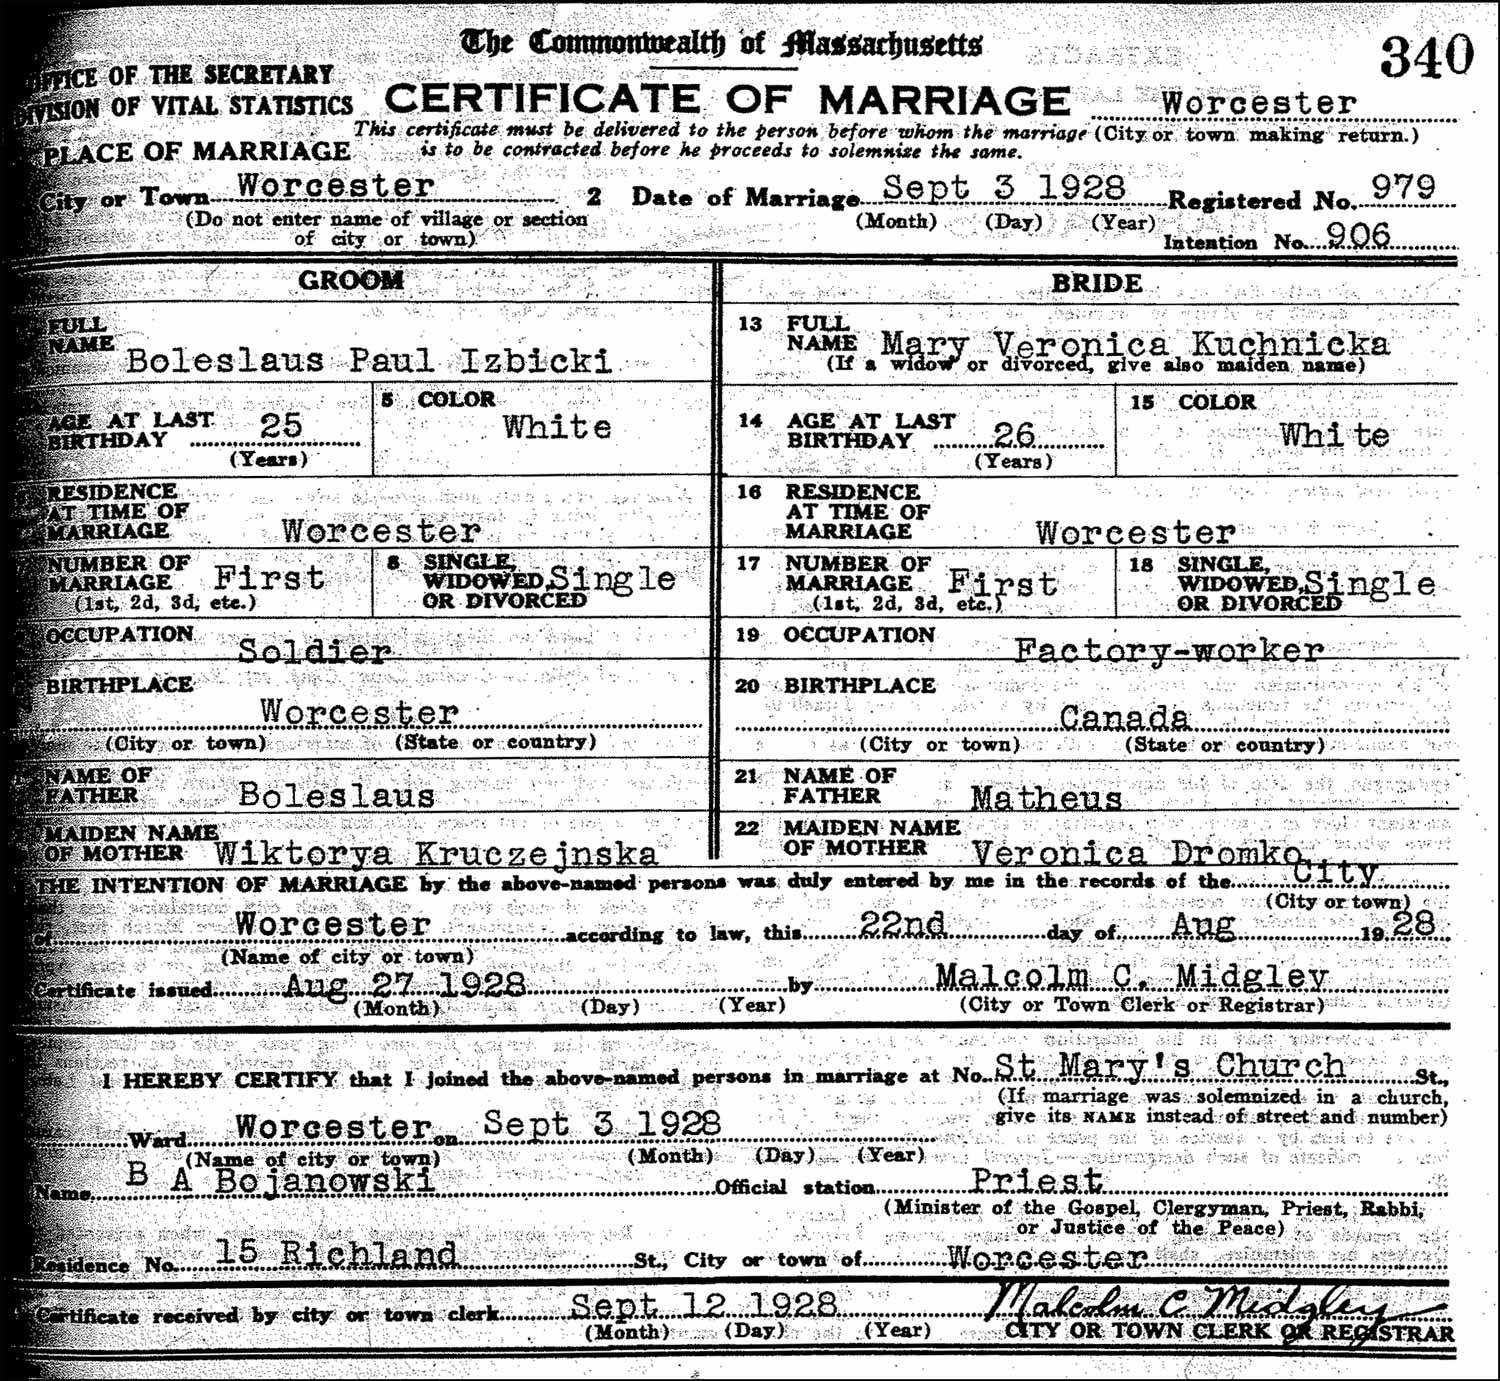 The Marriage Record of Boleslaus Paul Izbicki and Mary Veronica Kuchnicka – 1928